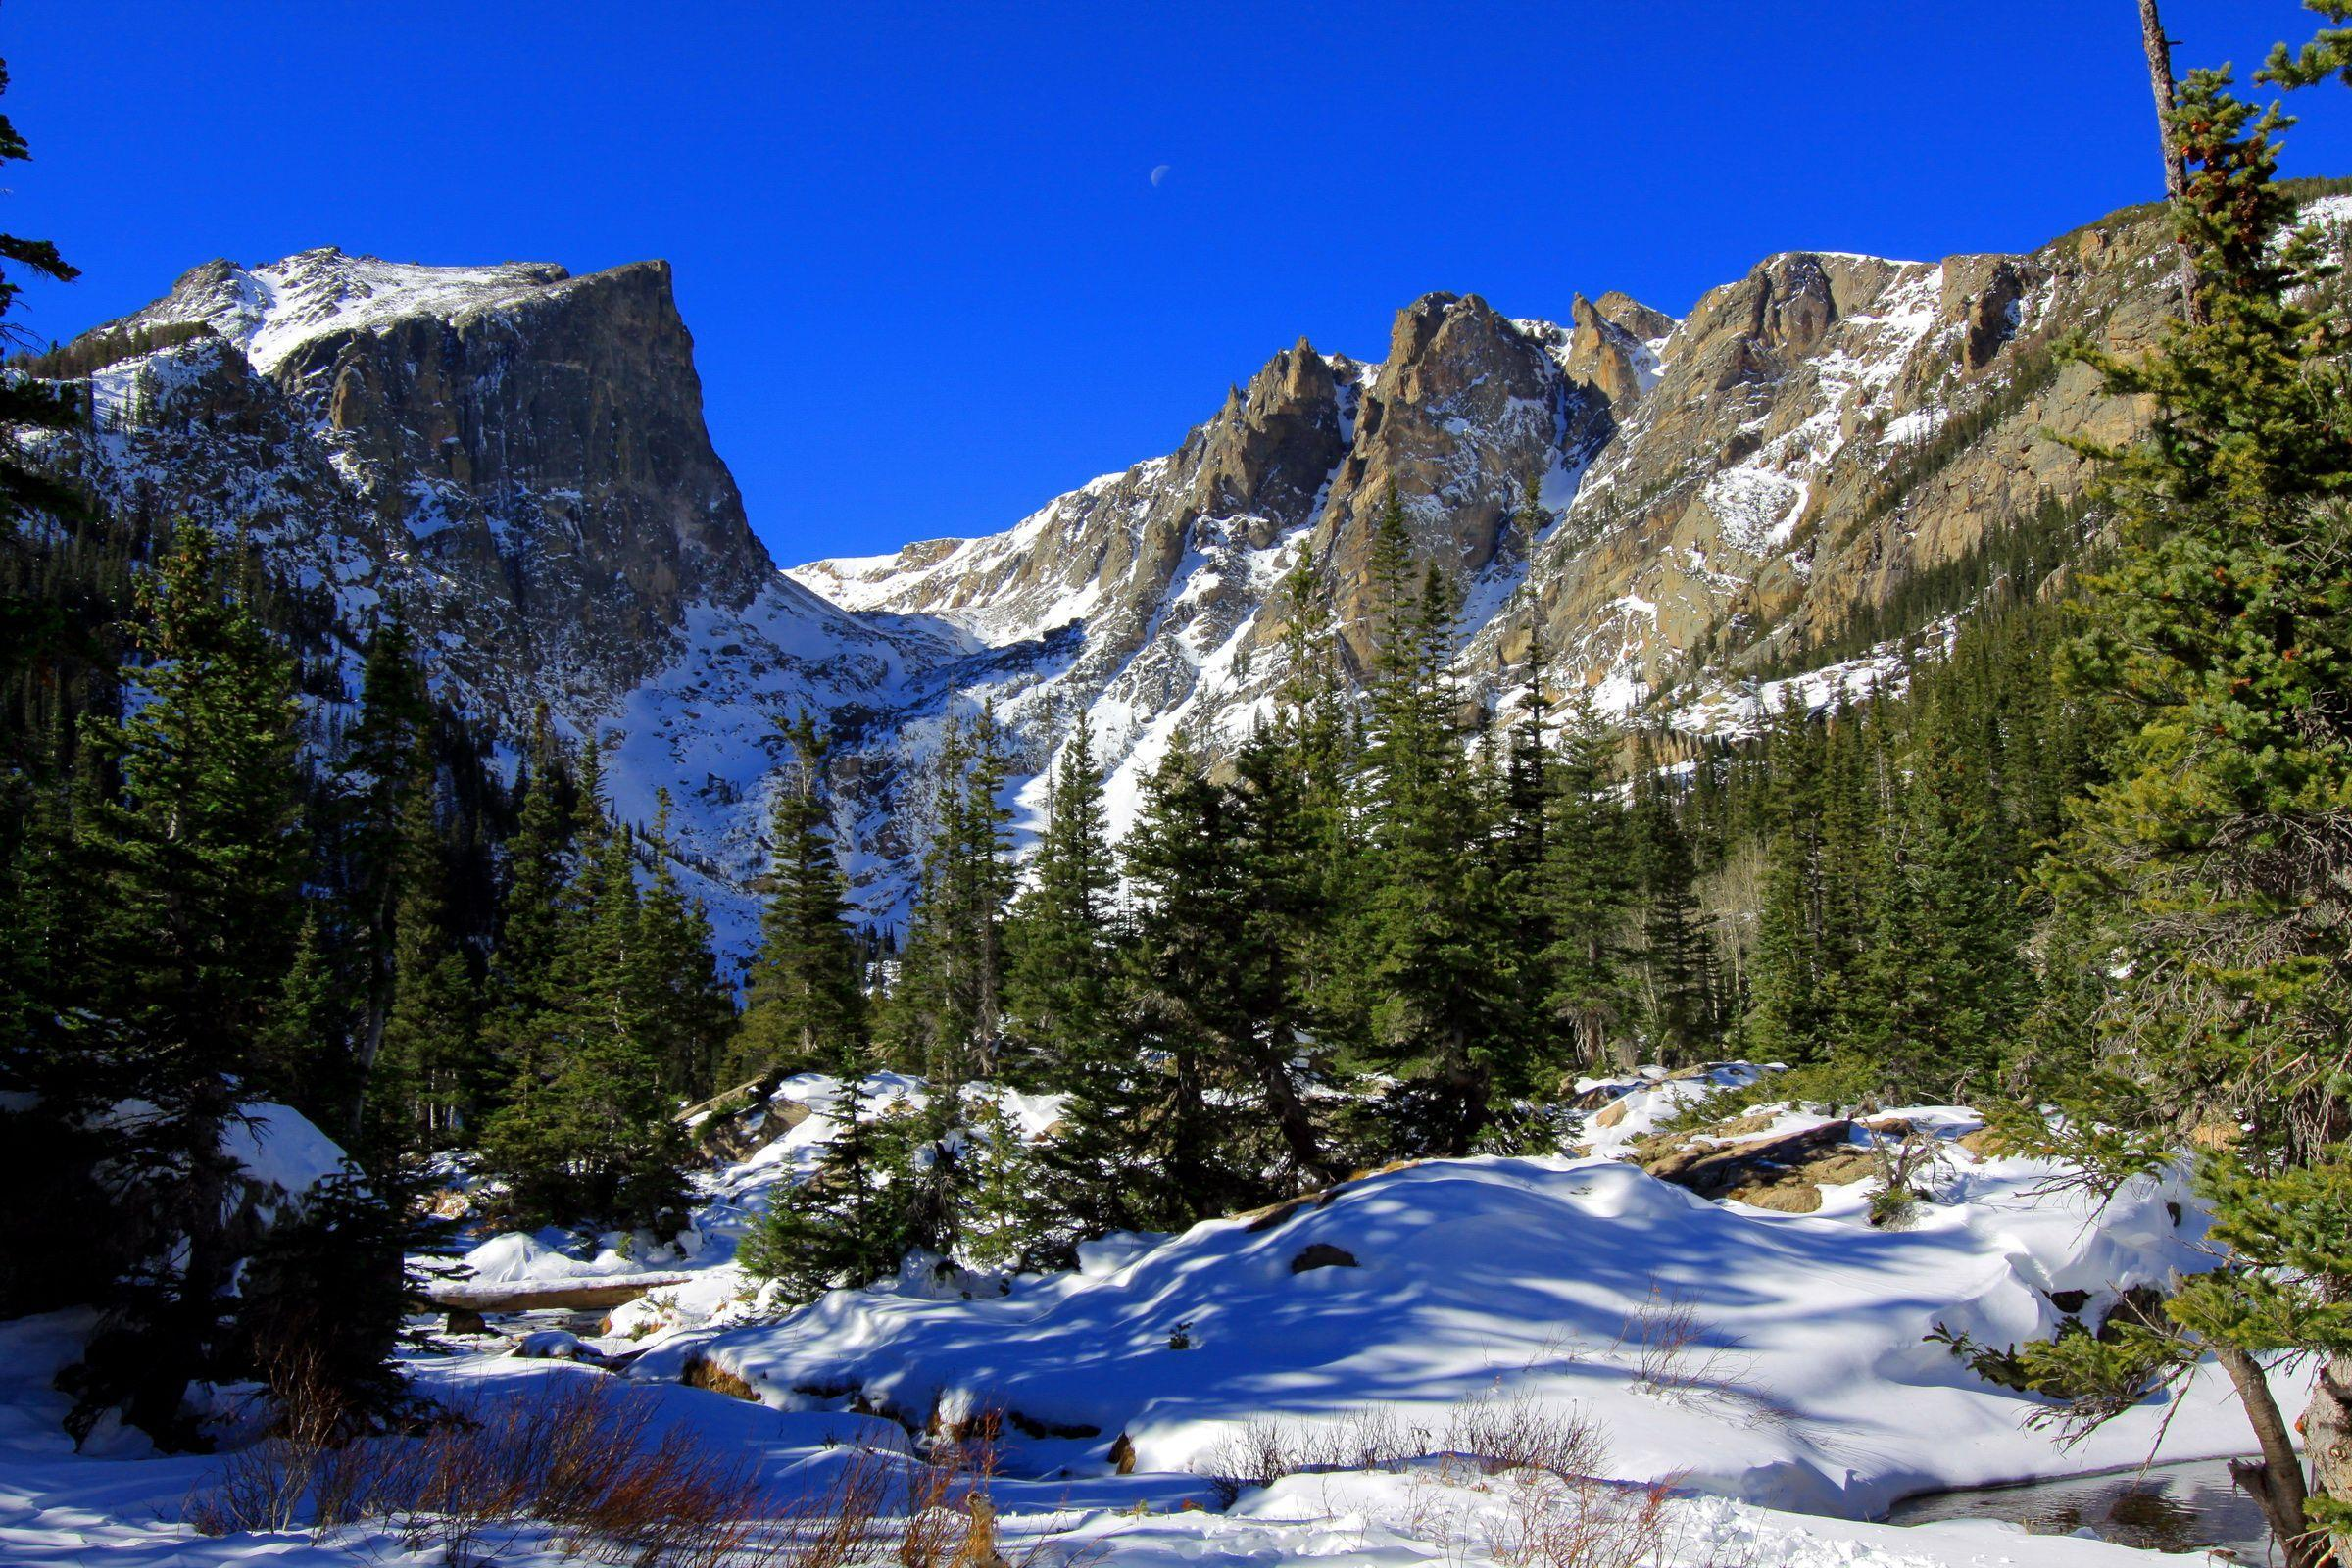 HD Rocky Mountain National Park Wallpaper, Live Rocky Mountain